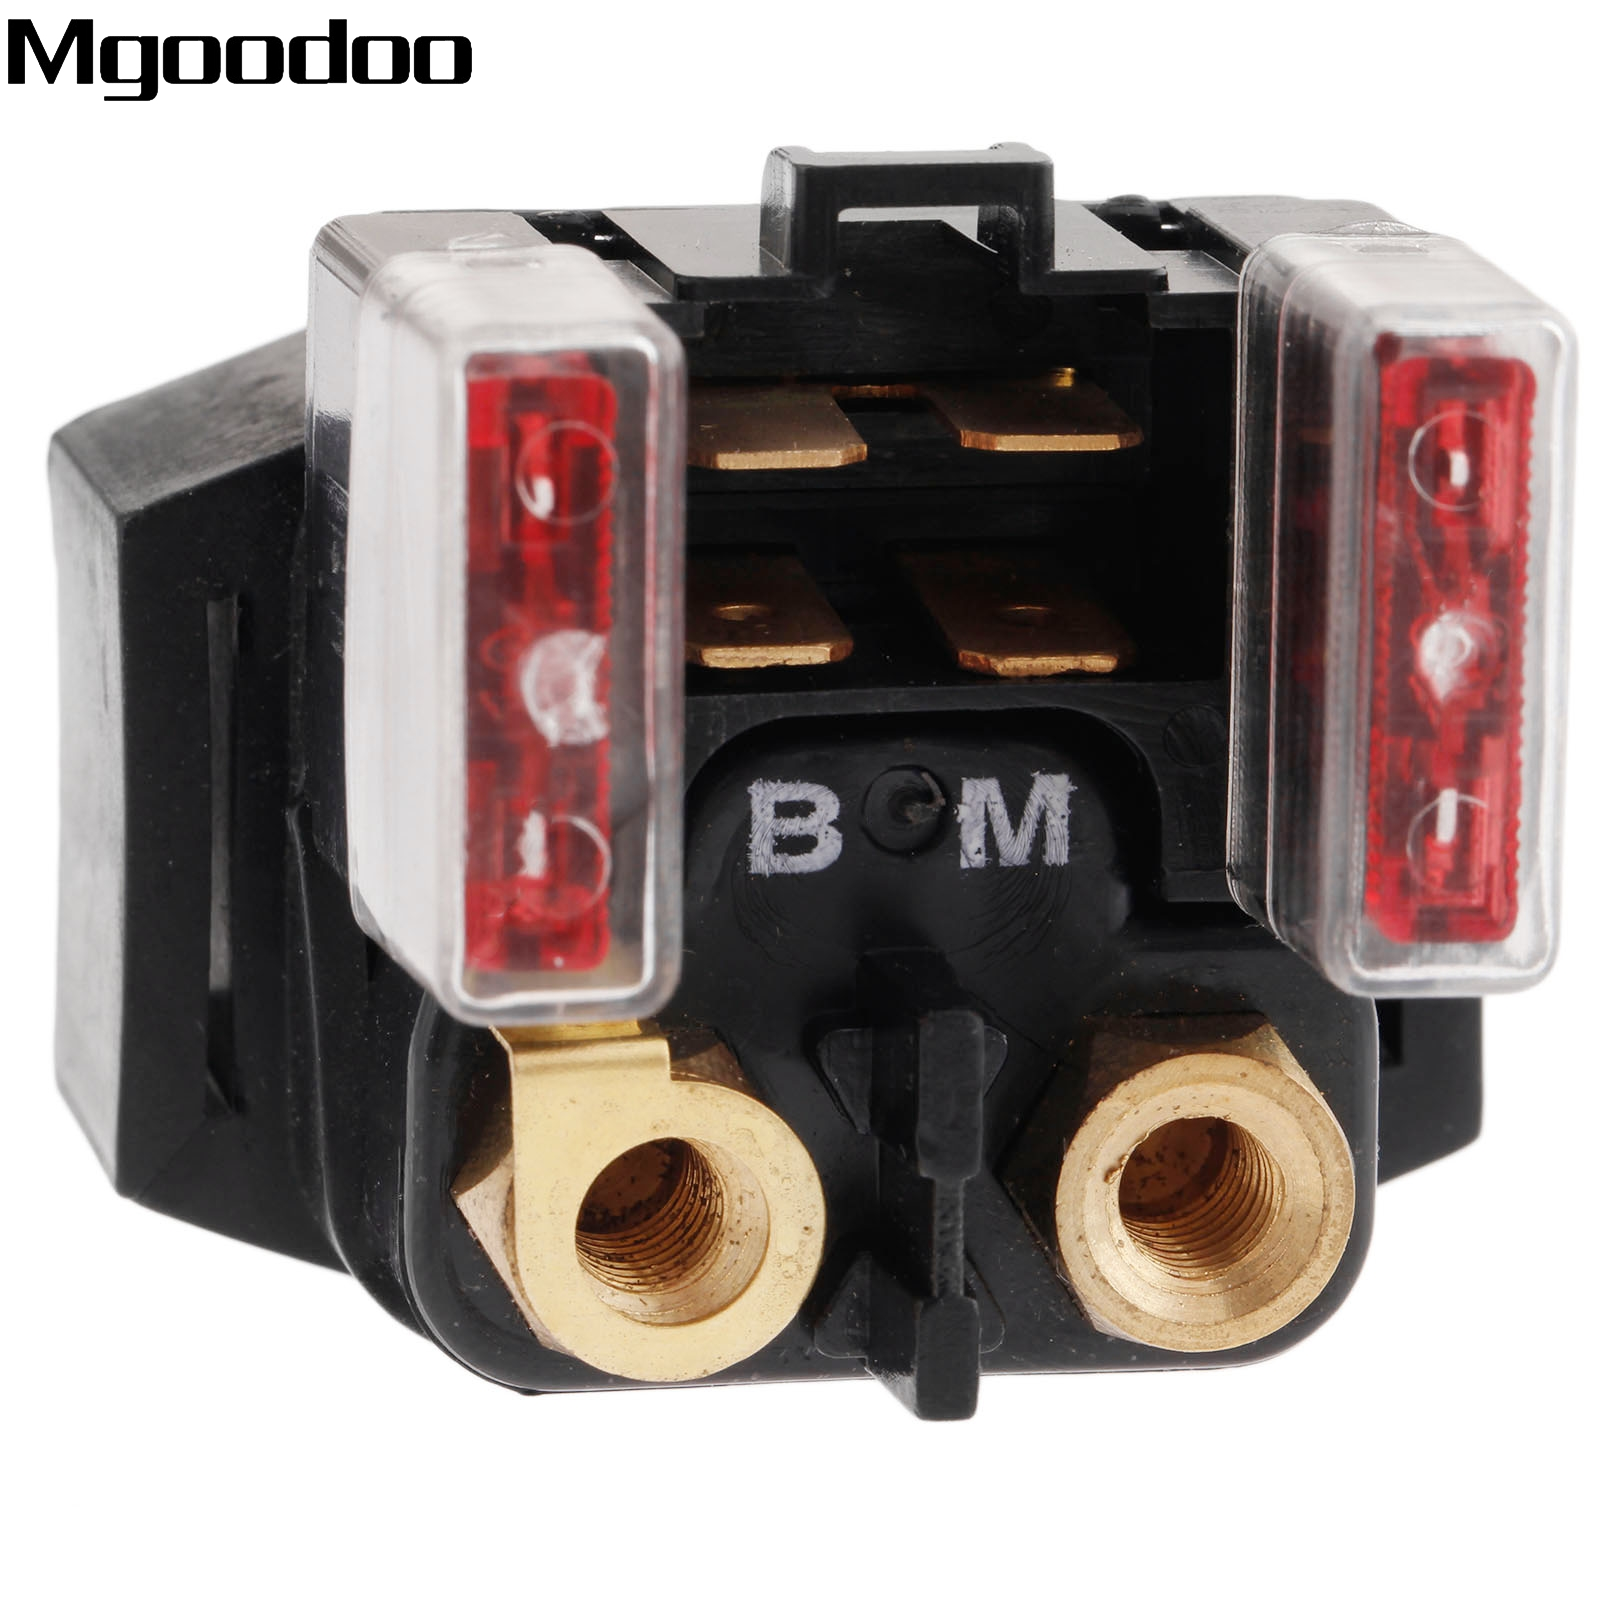 hight resolution of mgoodoo motorcycle atv starter relay solenoid for yamaha grizzly 660 yfm660 2002 2008 2003 2004 2005 2006 motor electrical parts in motorbike ingition from